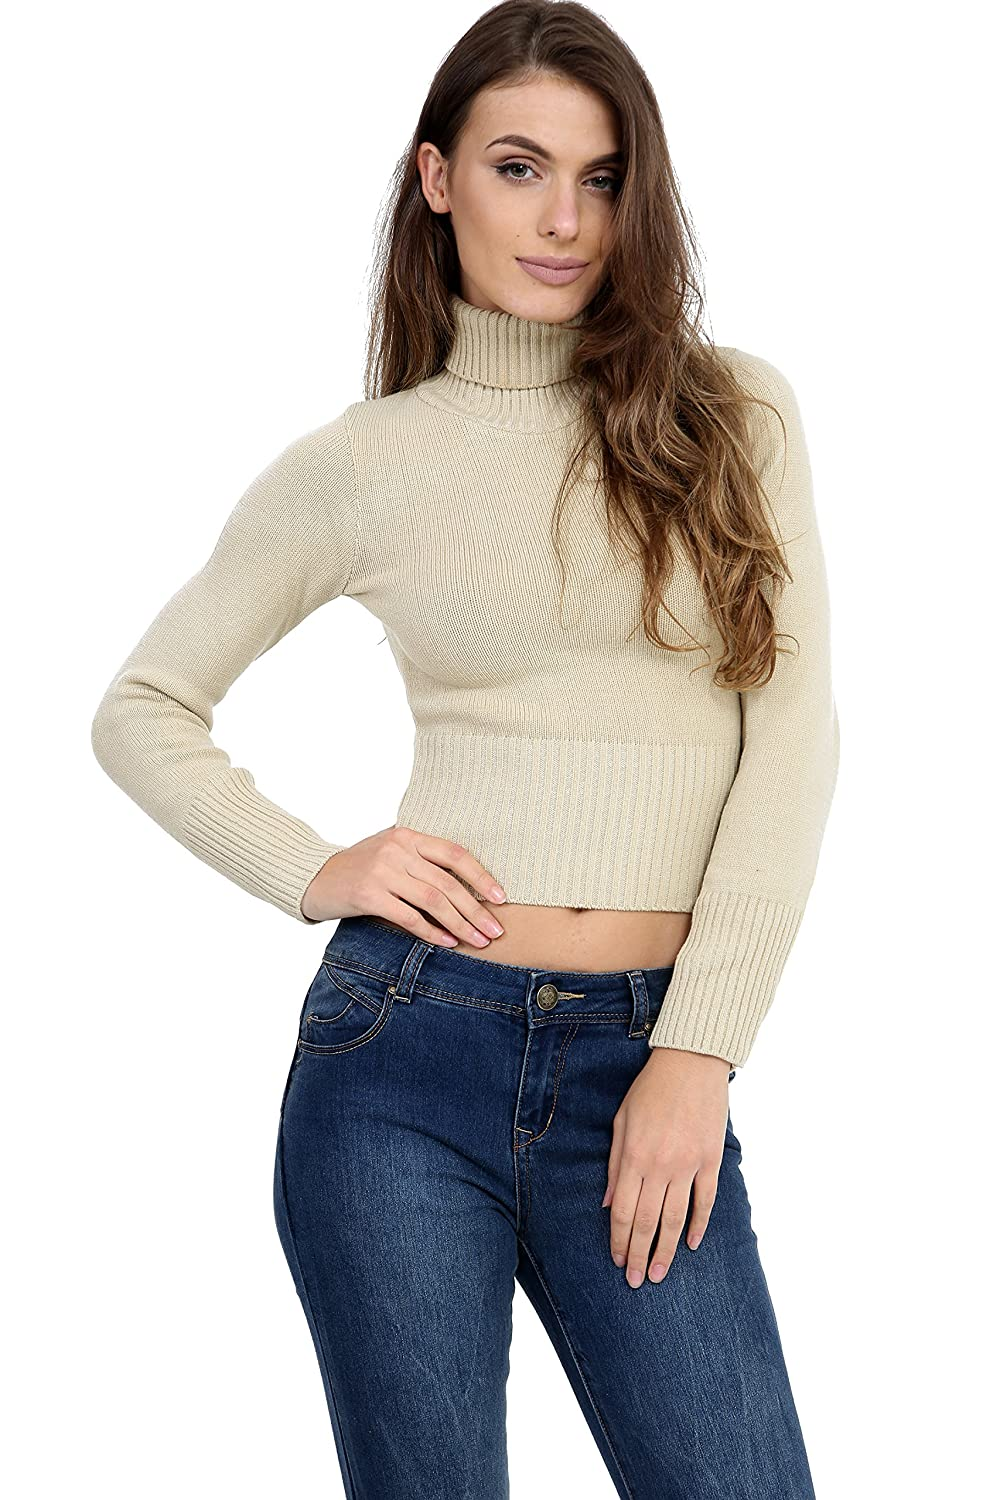 NEW WOMENS LADIES LONG SLEEVE RIB PATTERN HIGH POLO NECK KNITTED CROP JUMPER TOP